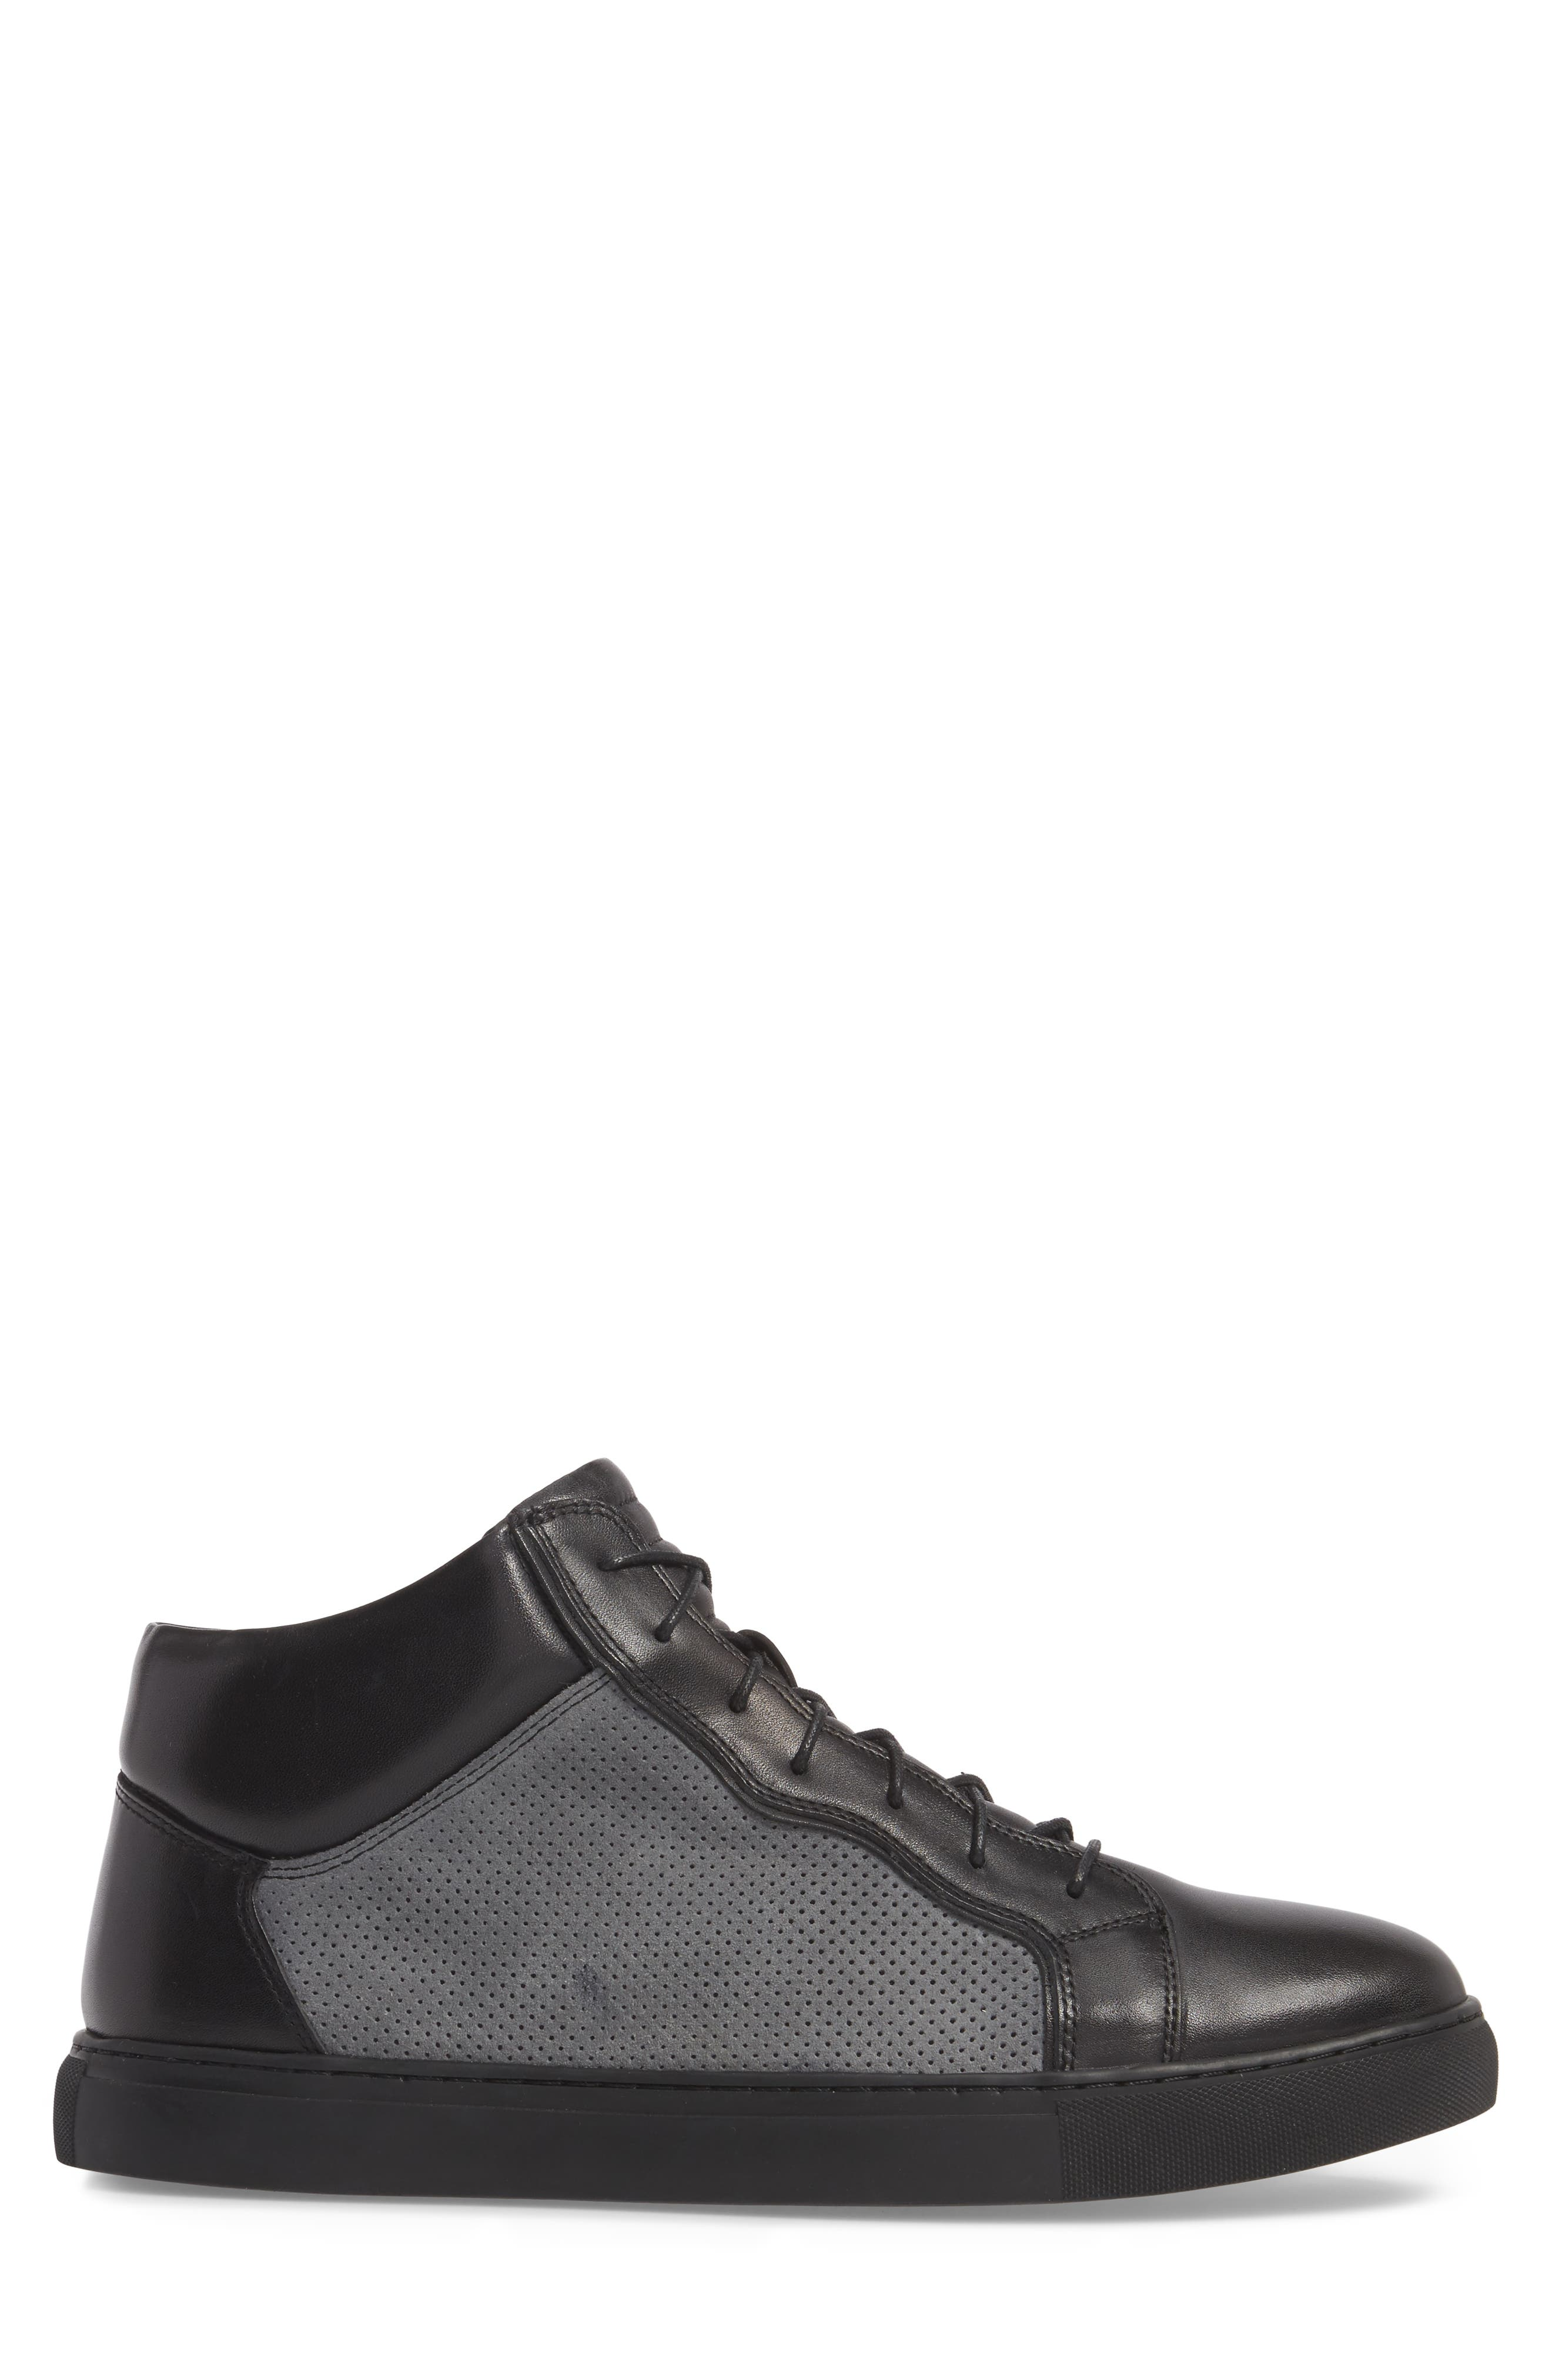 Twist Perforated High Top Sneaker,                             Alternate thumbnail 3, color,                             BLACK LEATHER/ SUEDE